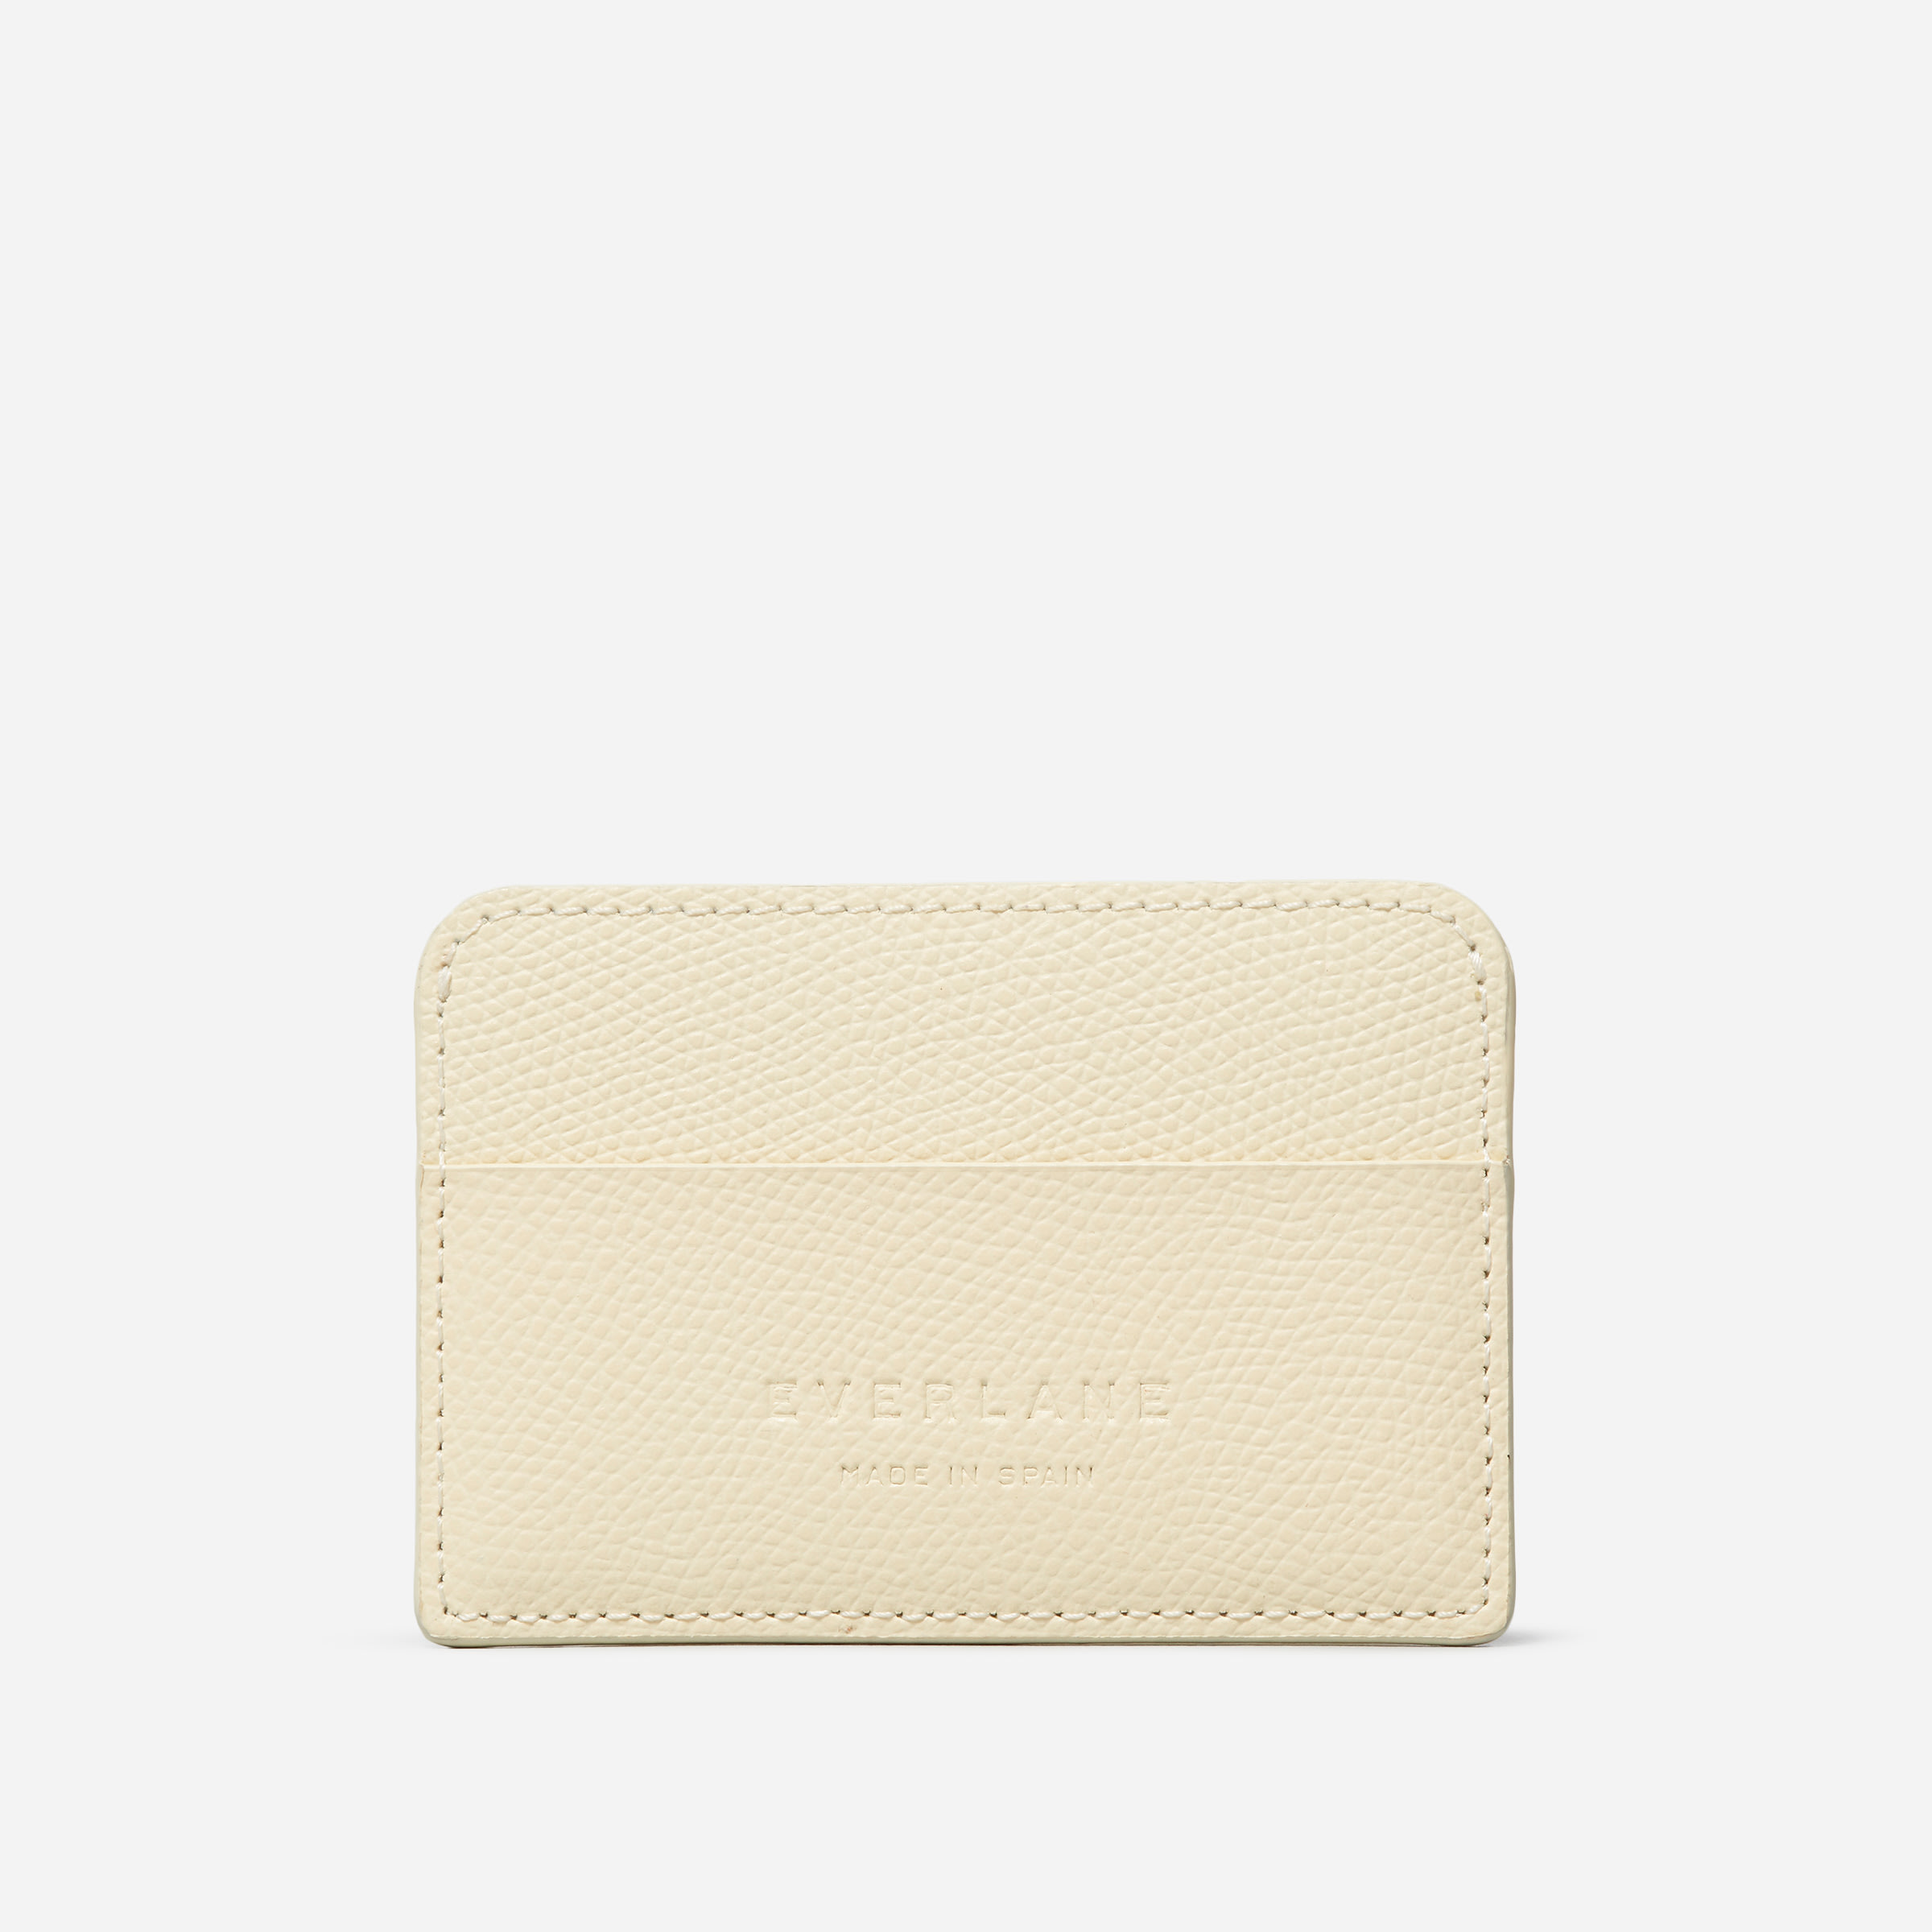 The Card Case $50 - The perfect grad gift (hint hint).